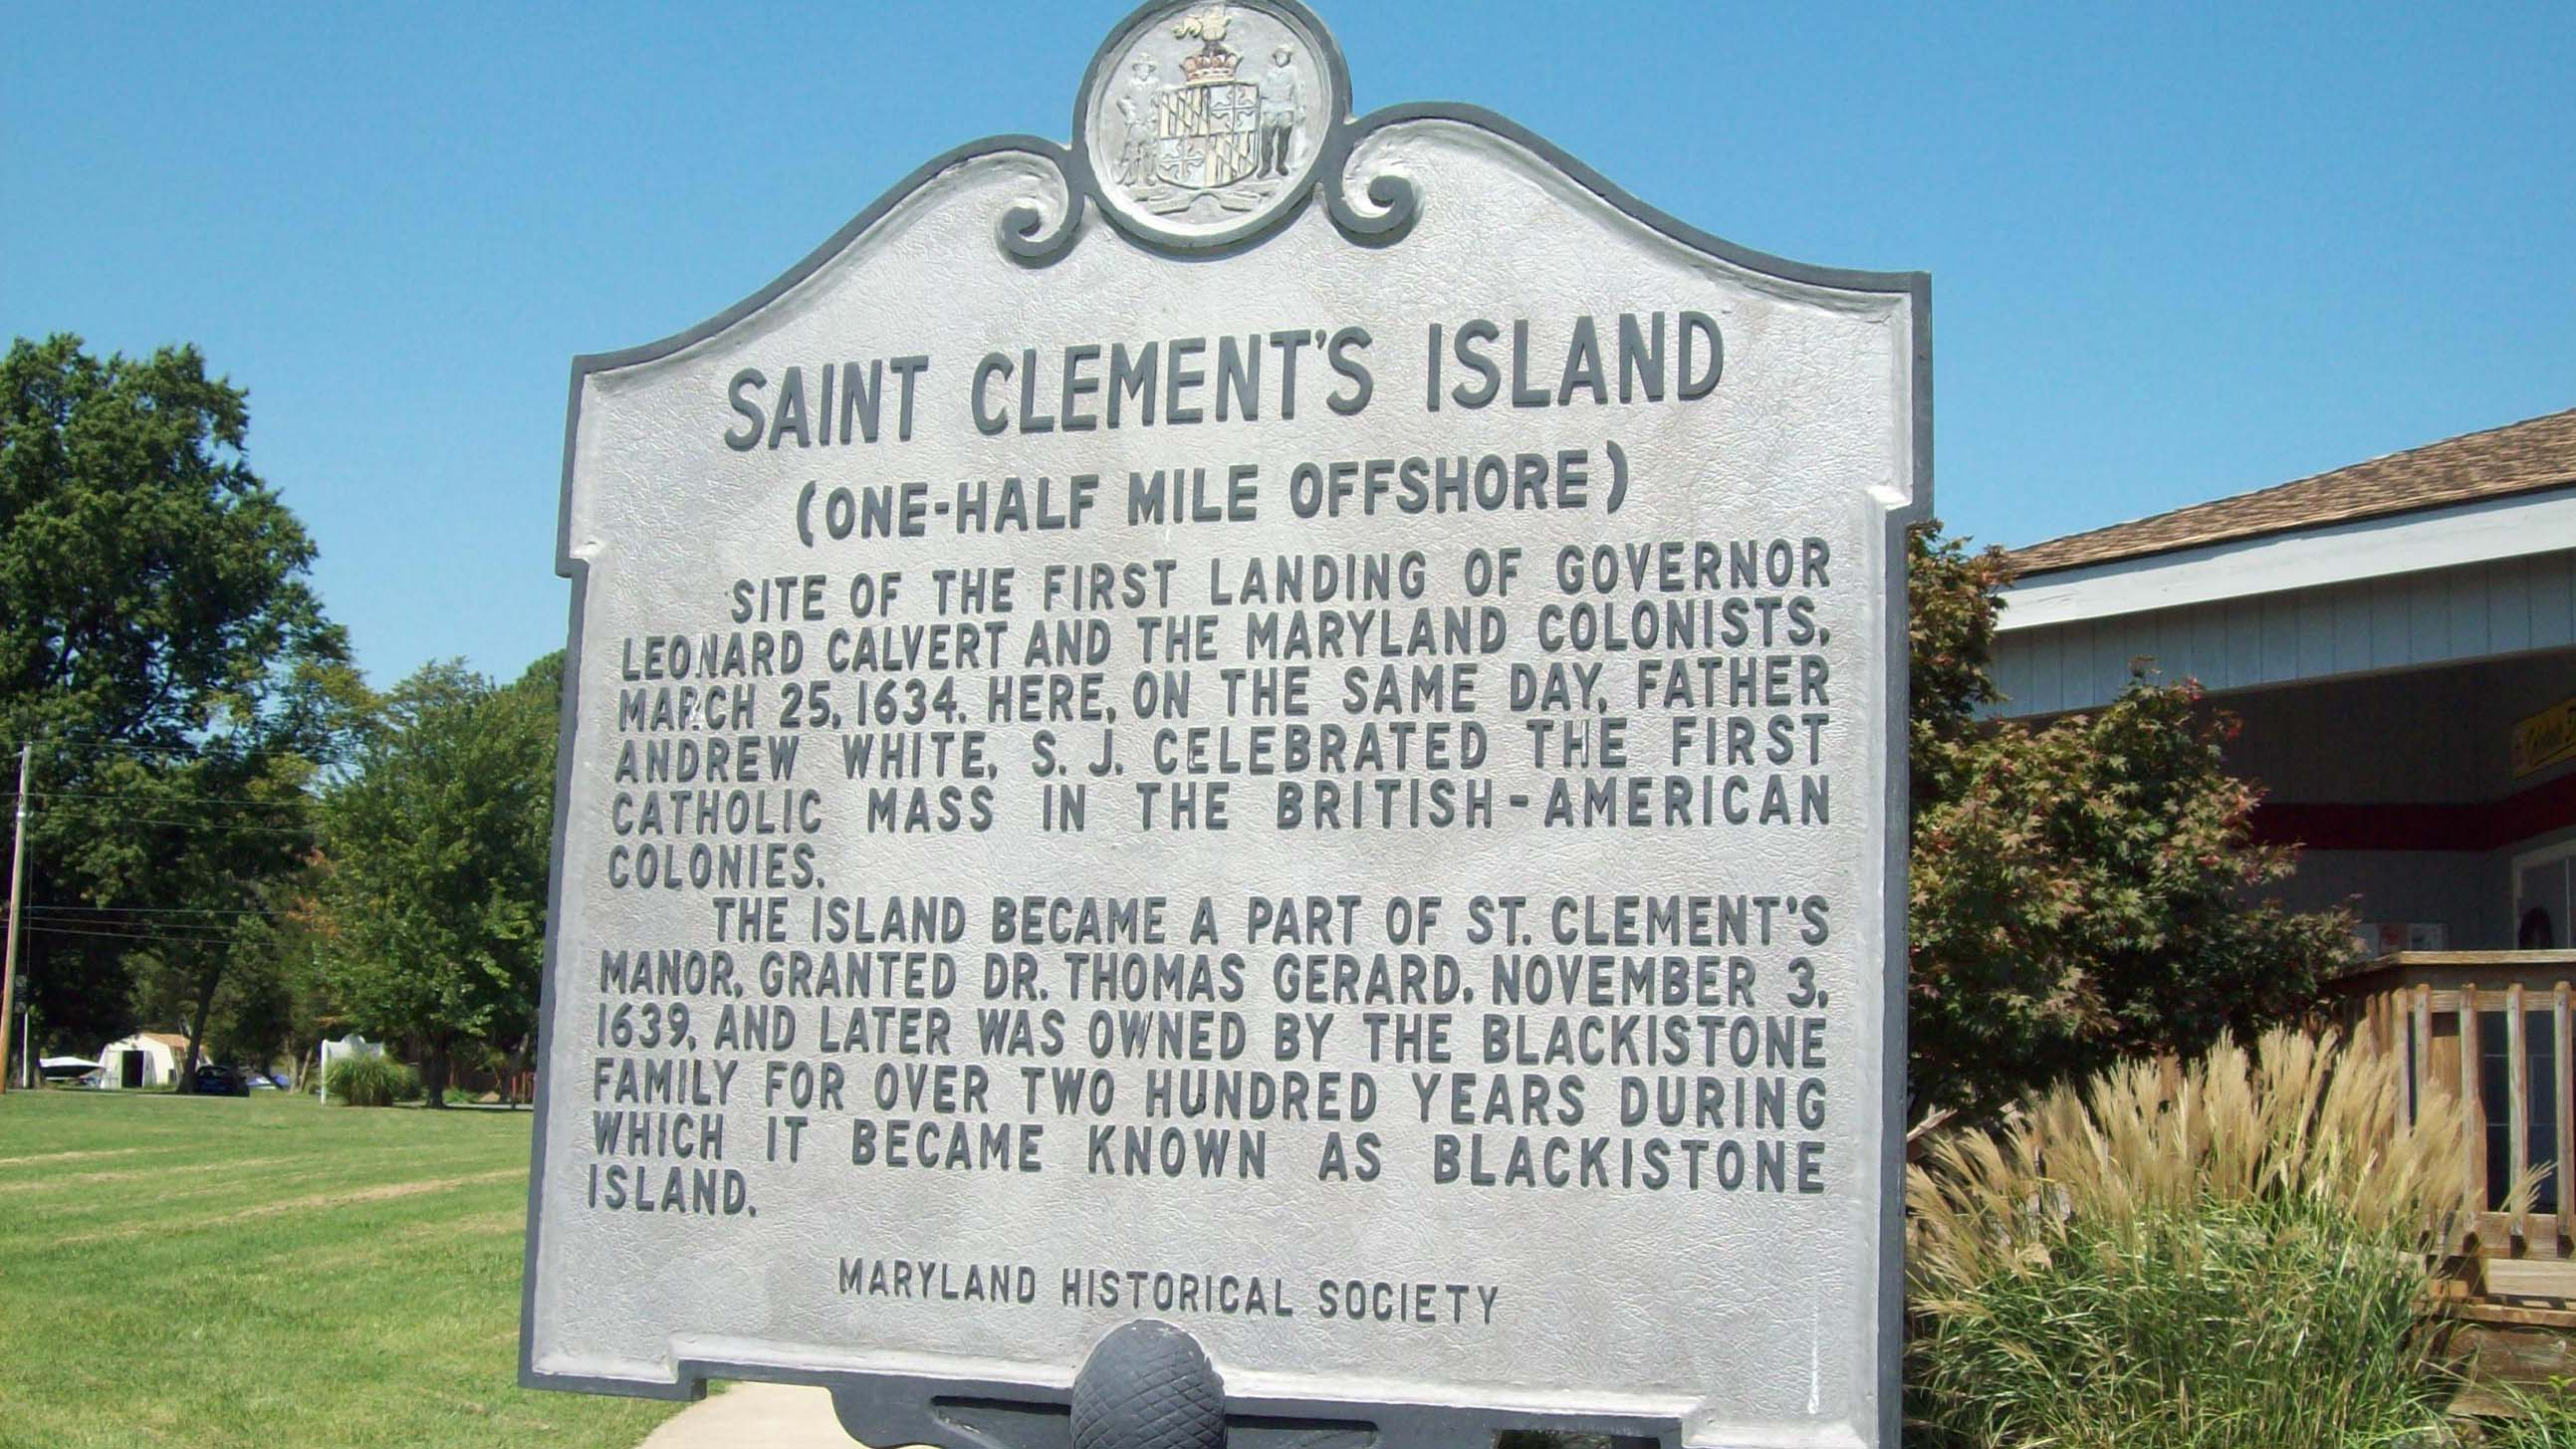 St. Clement's Island